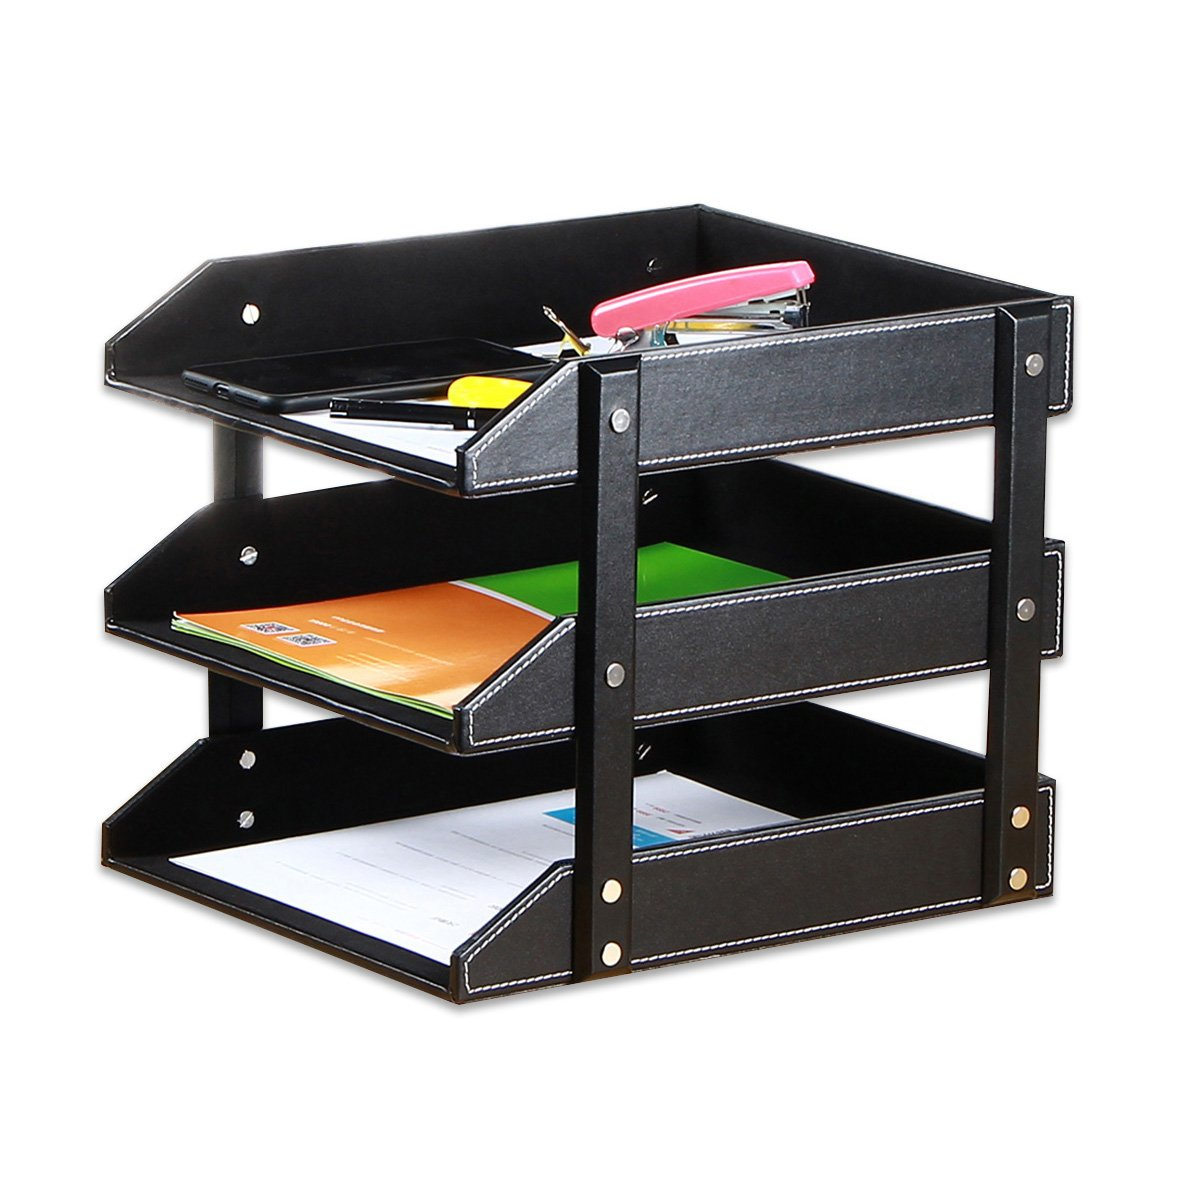 Stacking Letter Trays Leather Office Desk Supply Organizer, 3-Tier Files Sorter Workplace Desktop Storage Holder for Document/Paper/Stationery/Magazine/Newspaper/Mail/Sundries (Black)